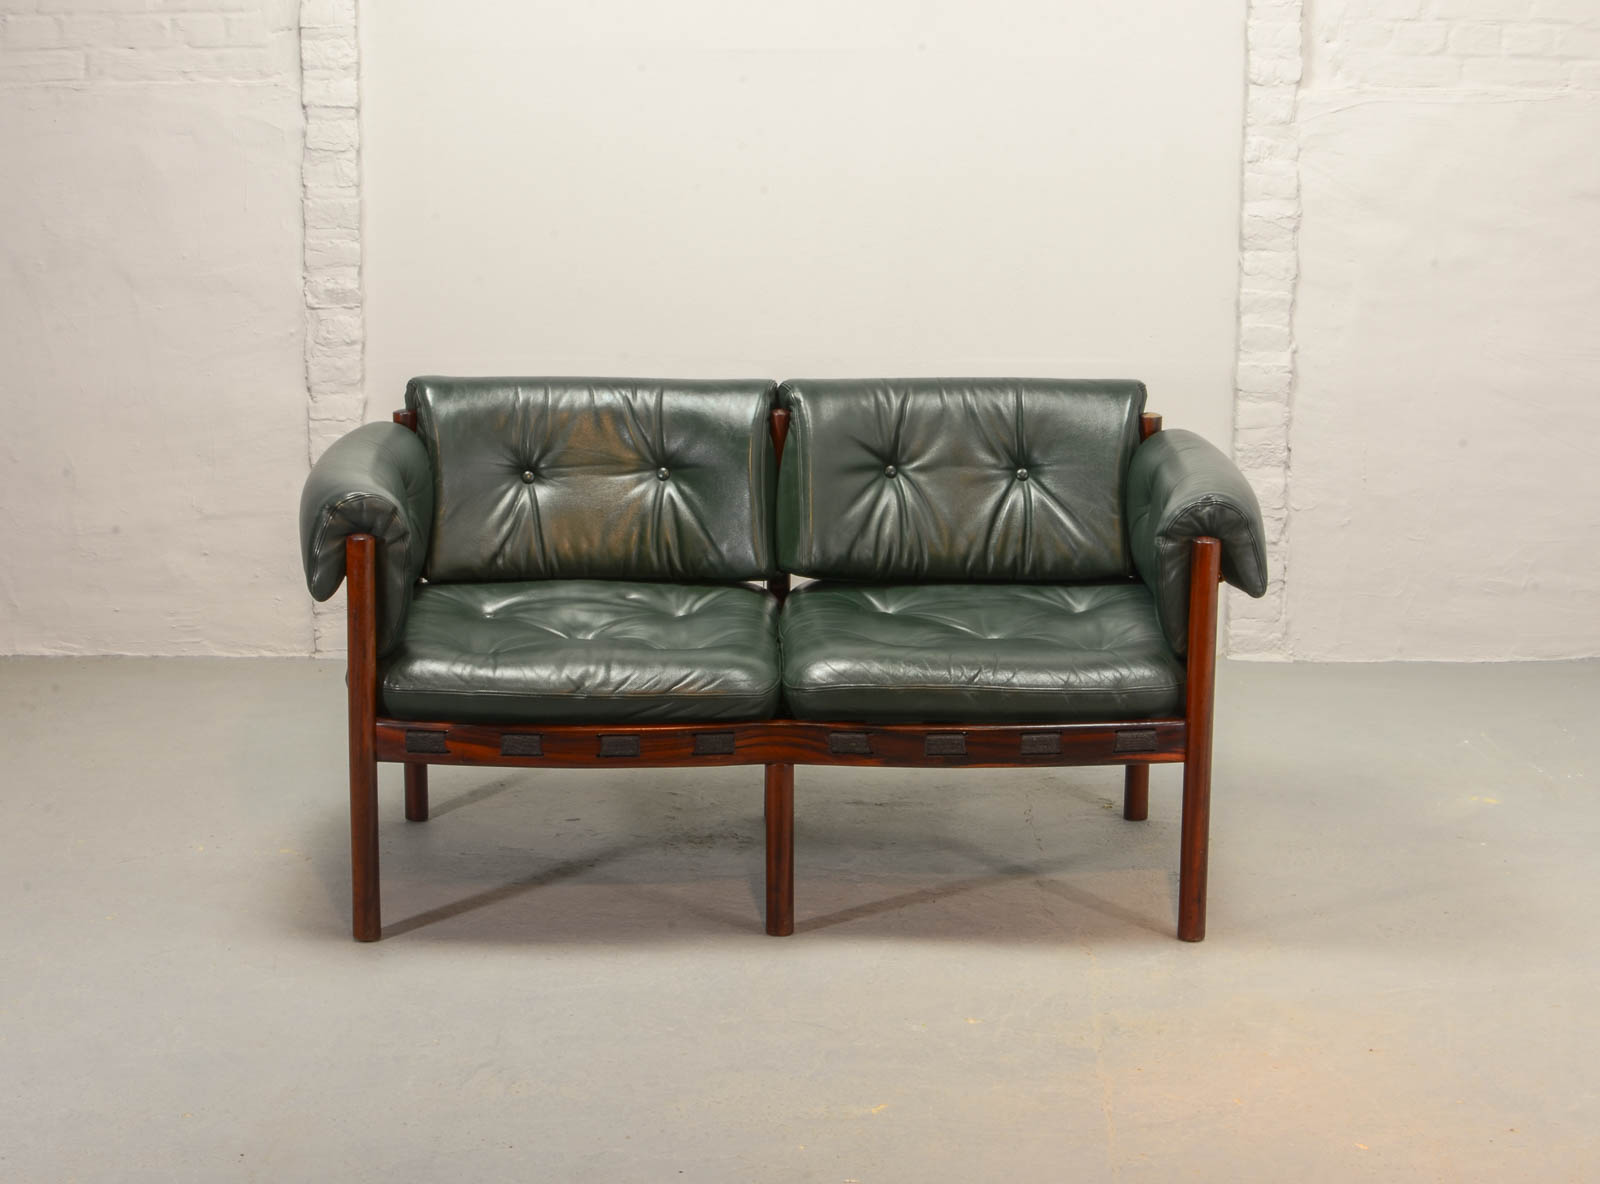 Midcentury Two-Seat Rosewood and Green Leather Sofa by Arne Norell ...